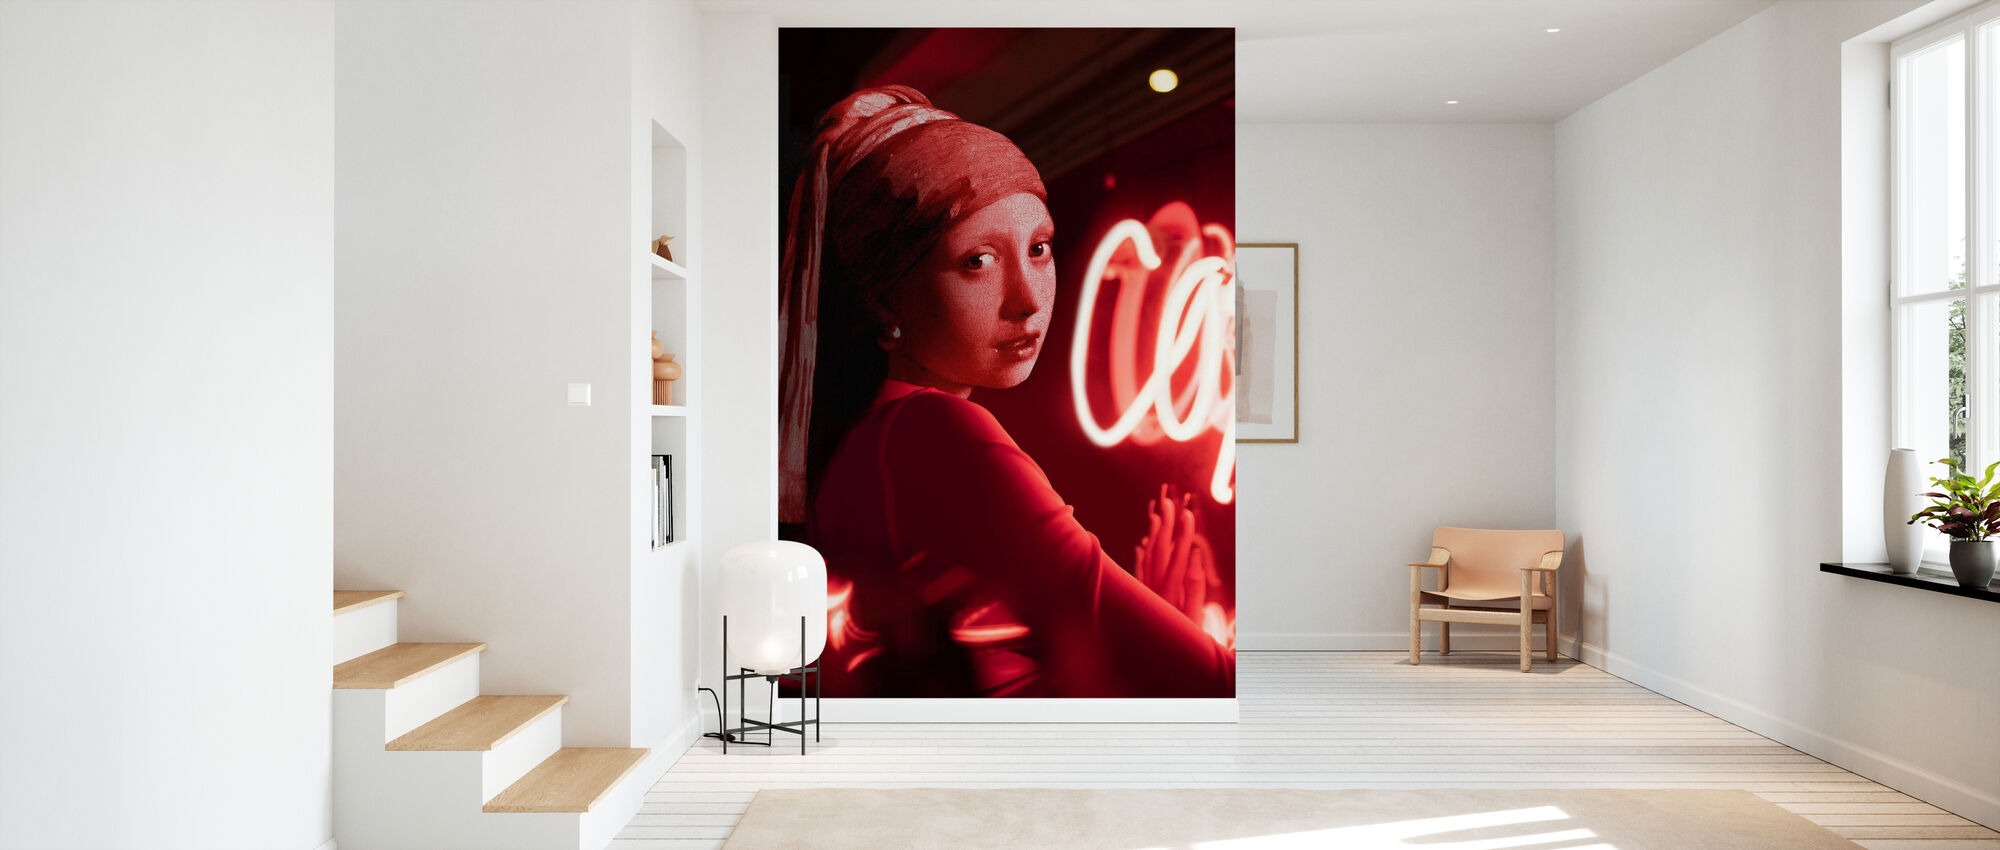 Girl with Pearl Earring Night Out - Wallpaper - Hallway